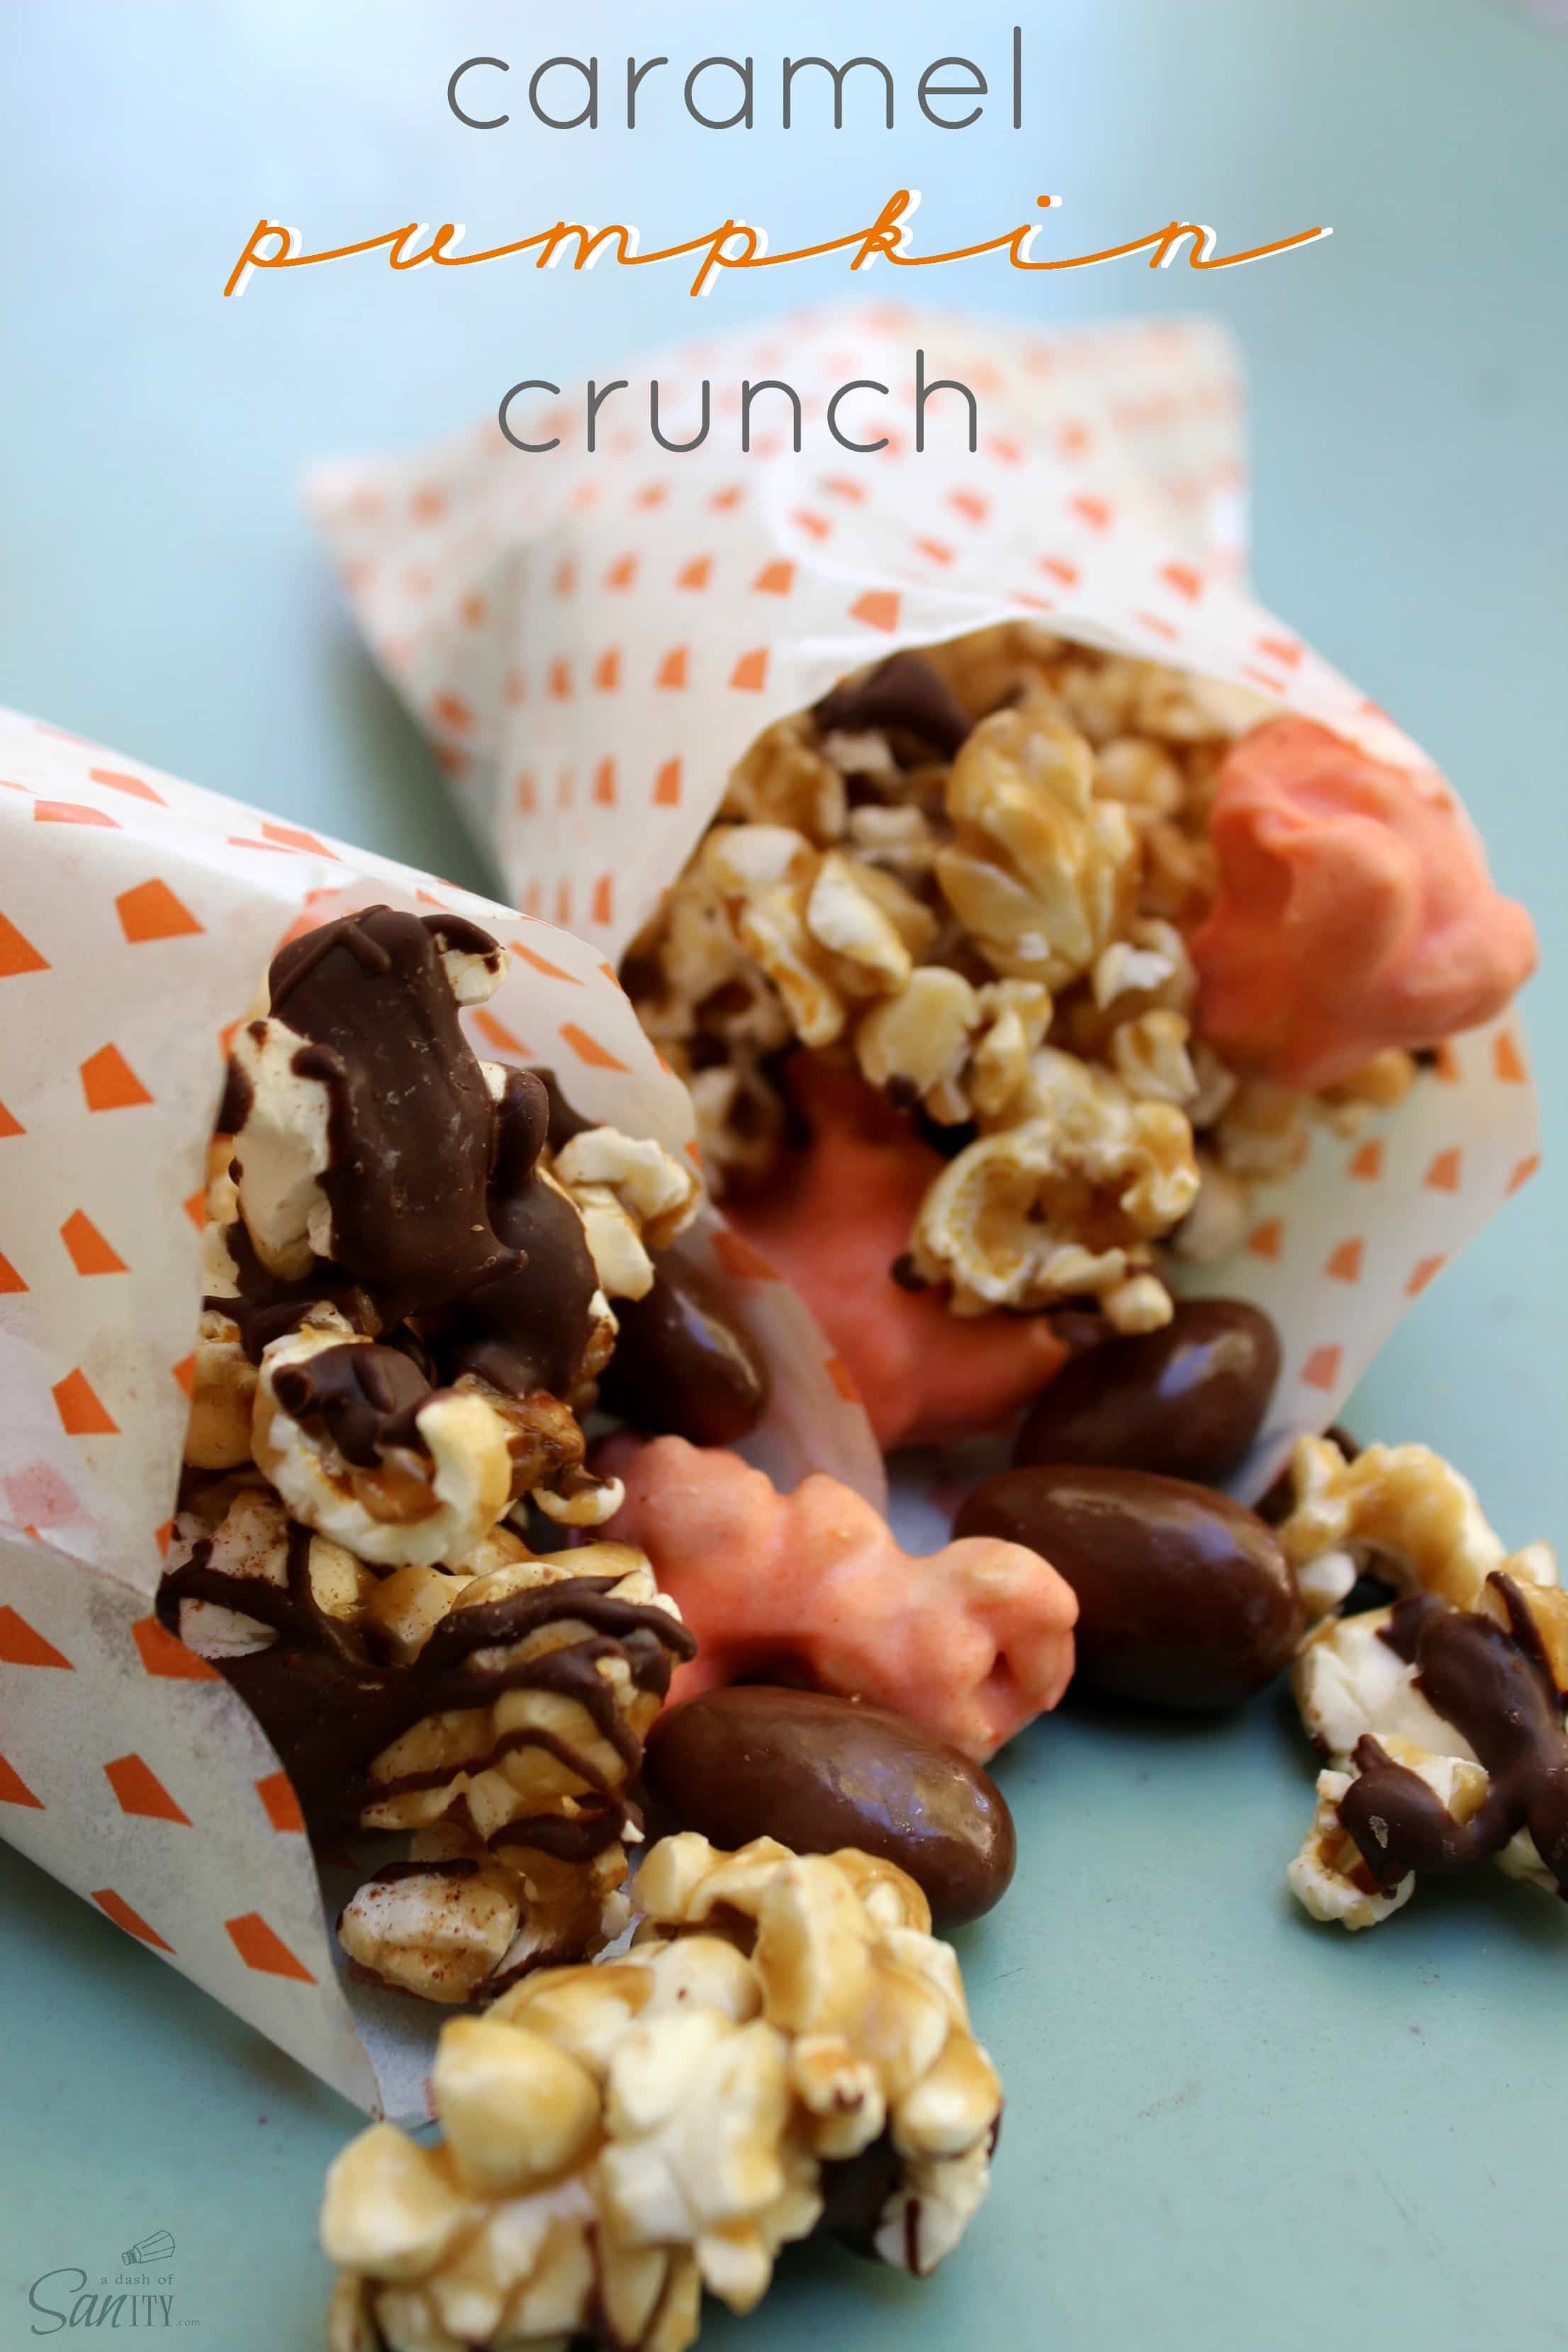 Caramel Pumpkin Crunch is made with caramel corn, chocolate covered ...